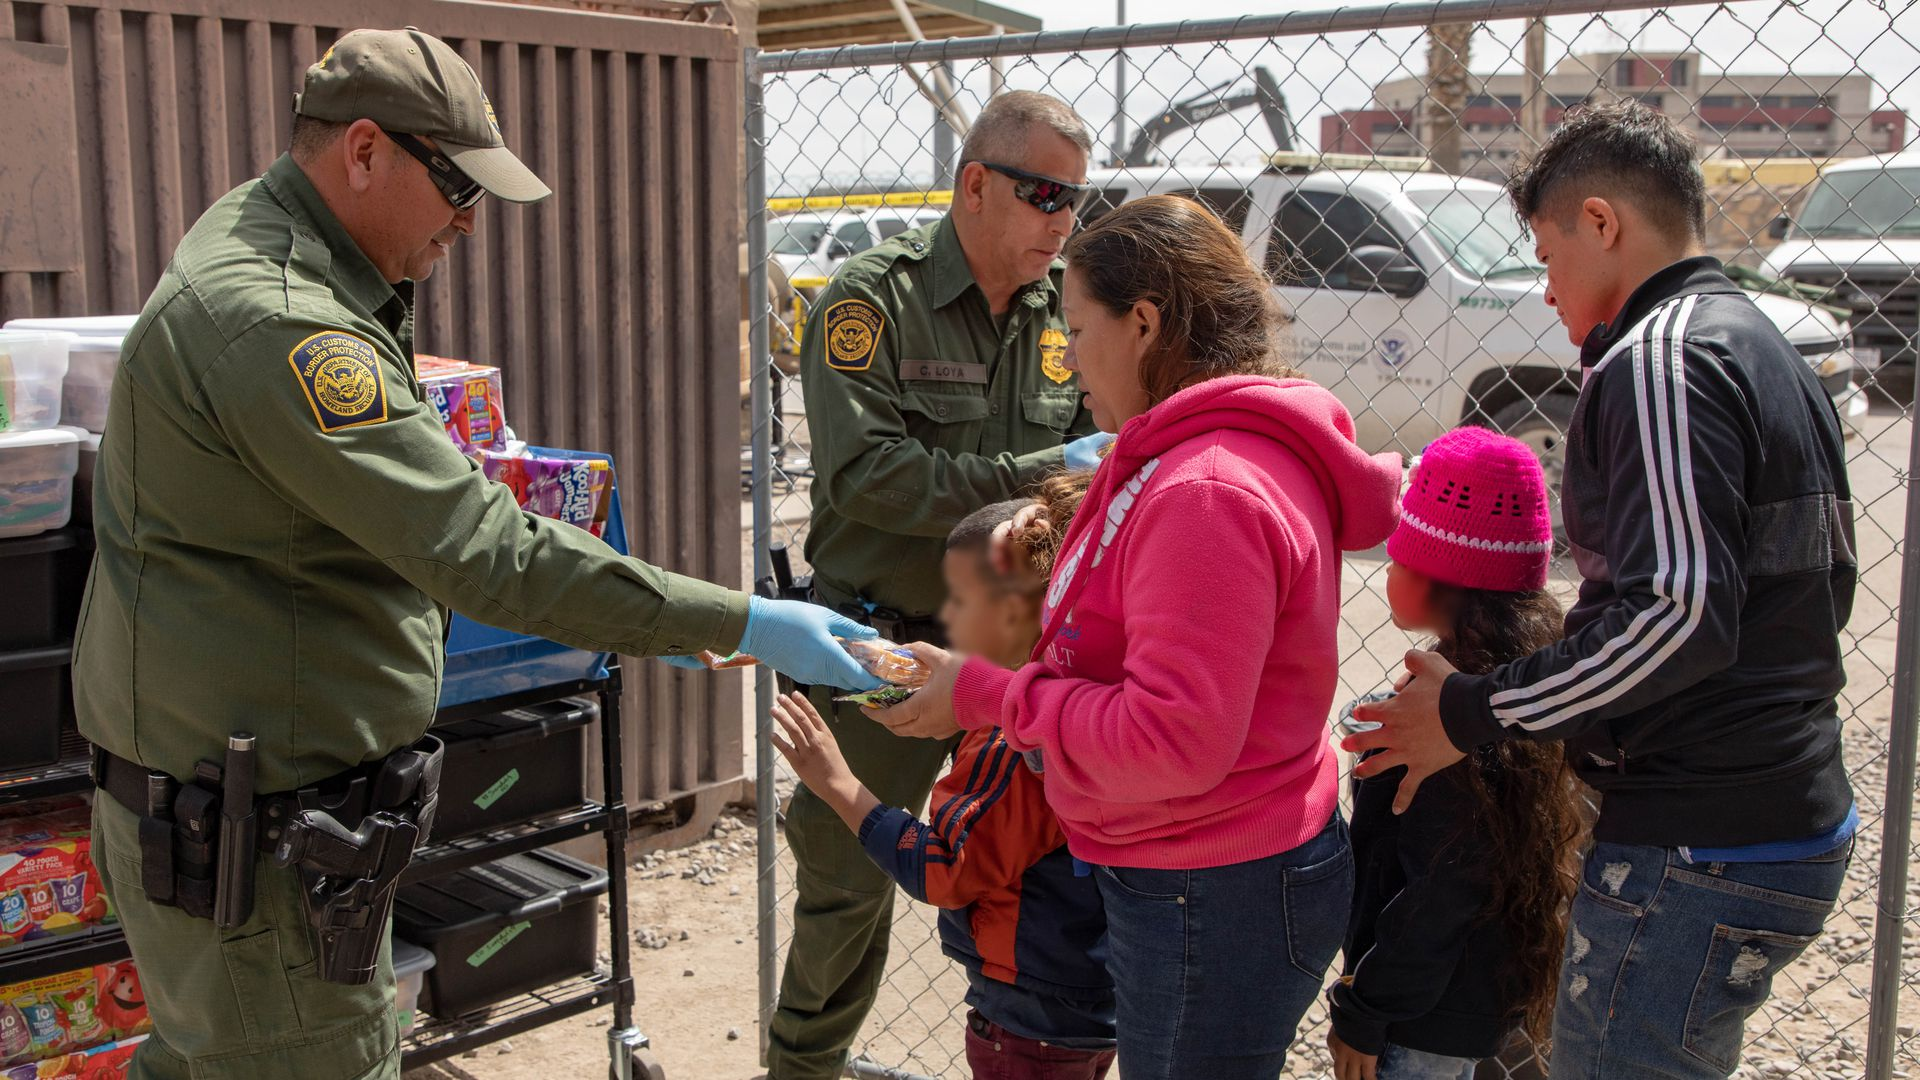 Border patrol agents encountering immigrants at the southern border.